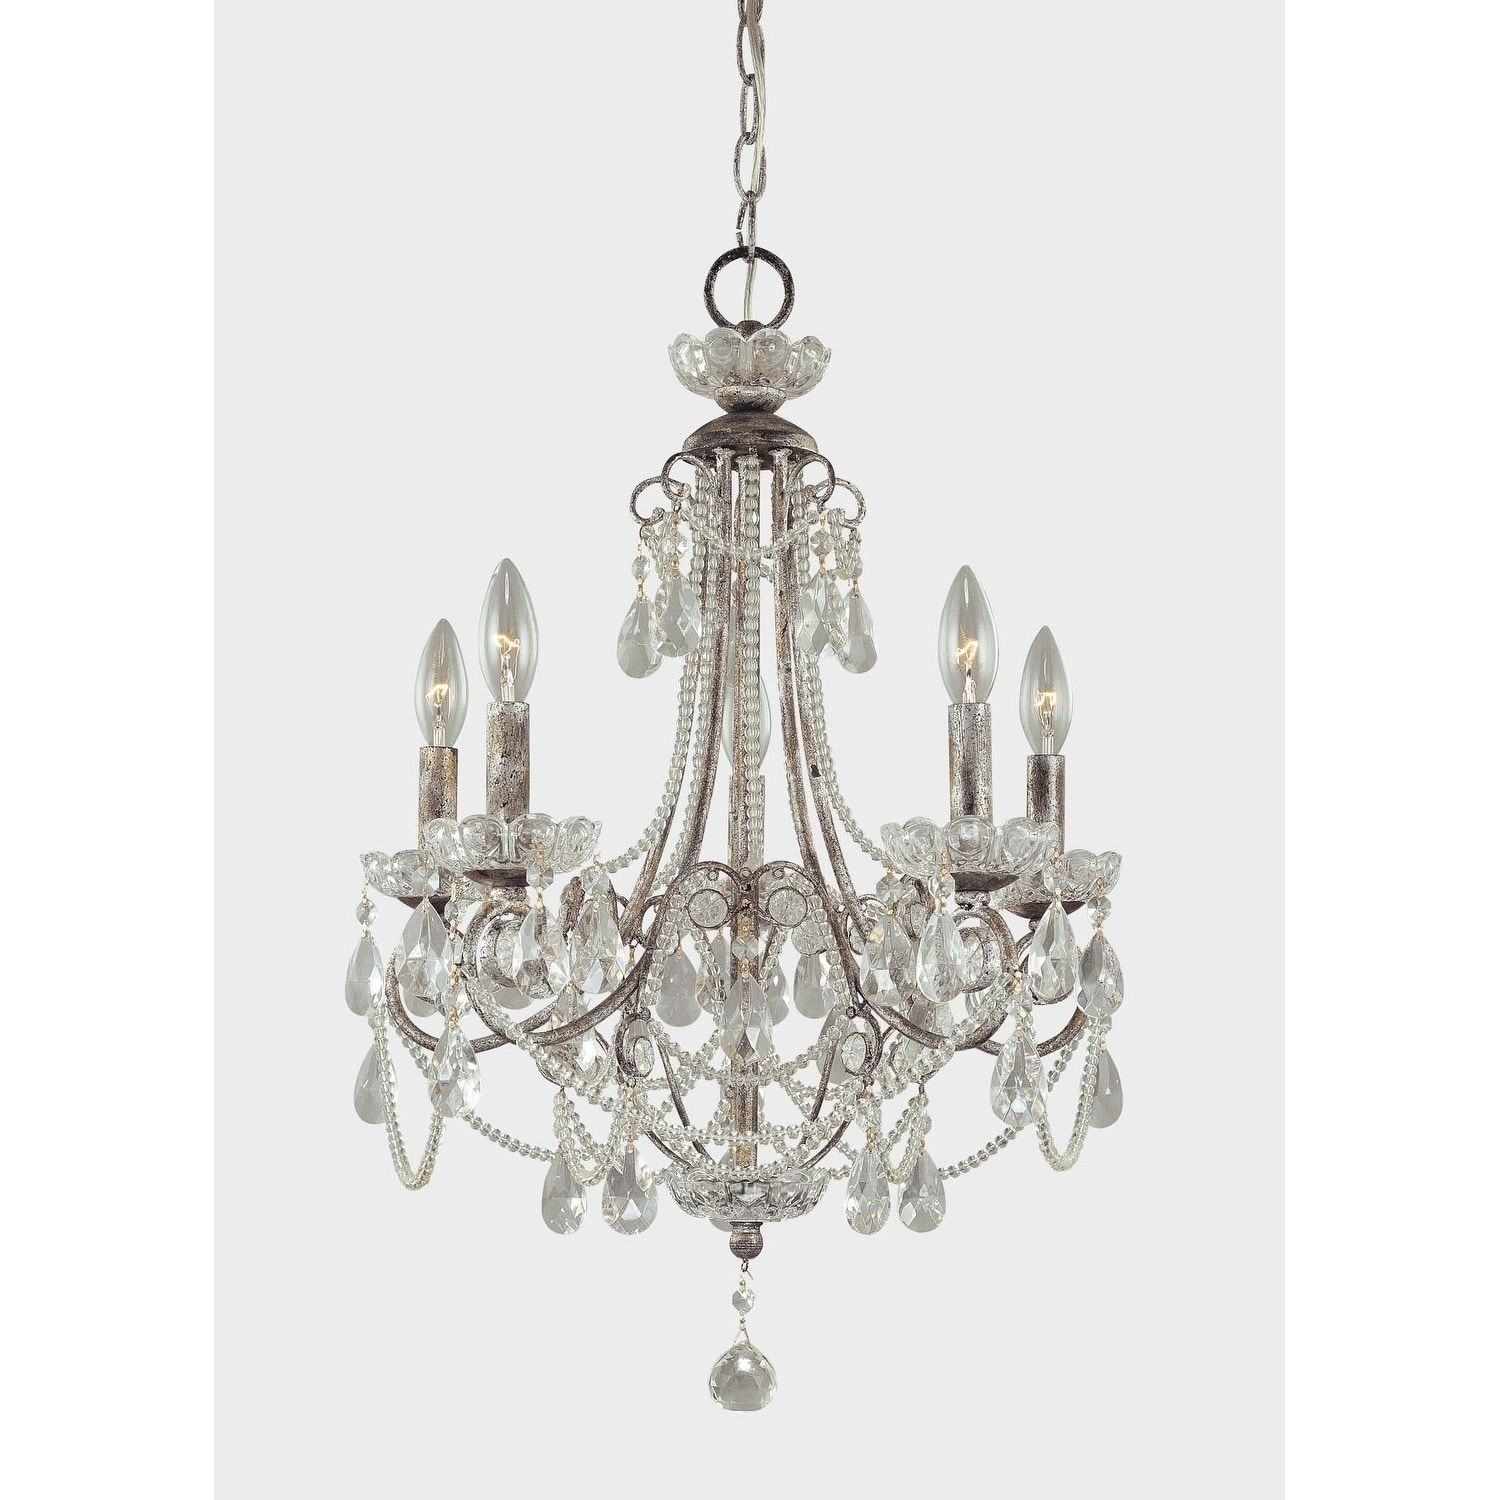 Minka Lavery 5 Light Mini Chandelier In 2019 | Products For Oriana 4 Light Single Geometric Chandeliers (View 22 of 30)